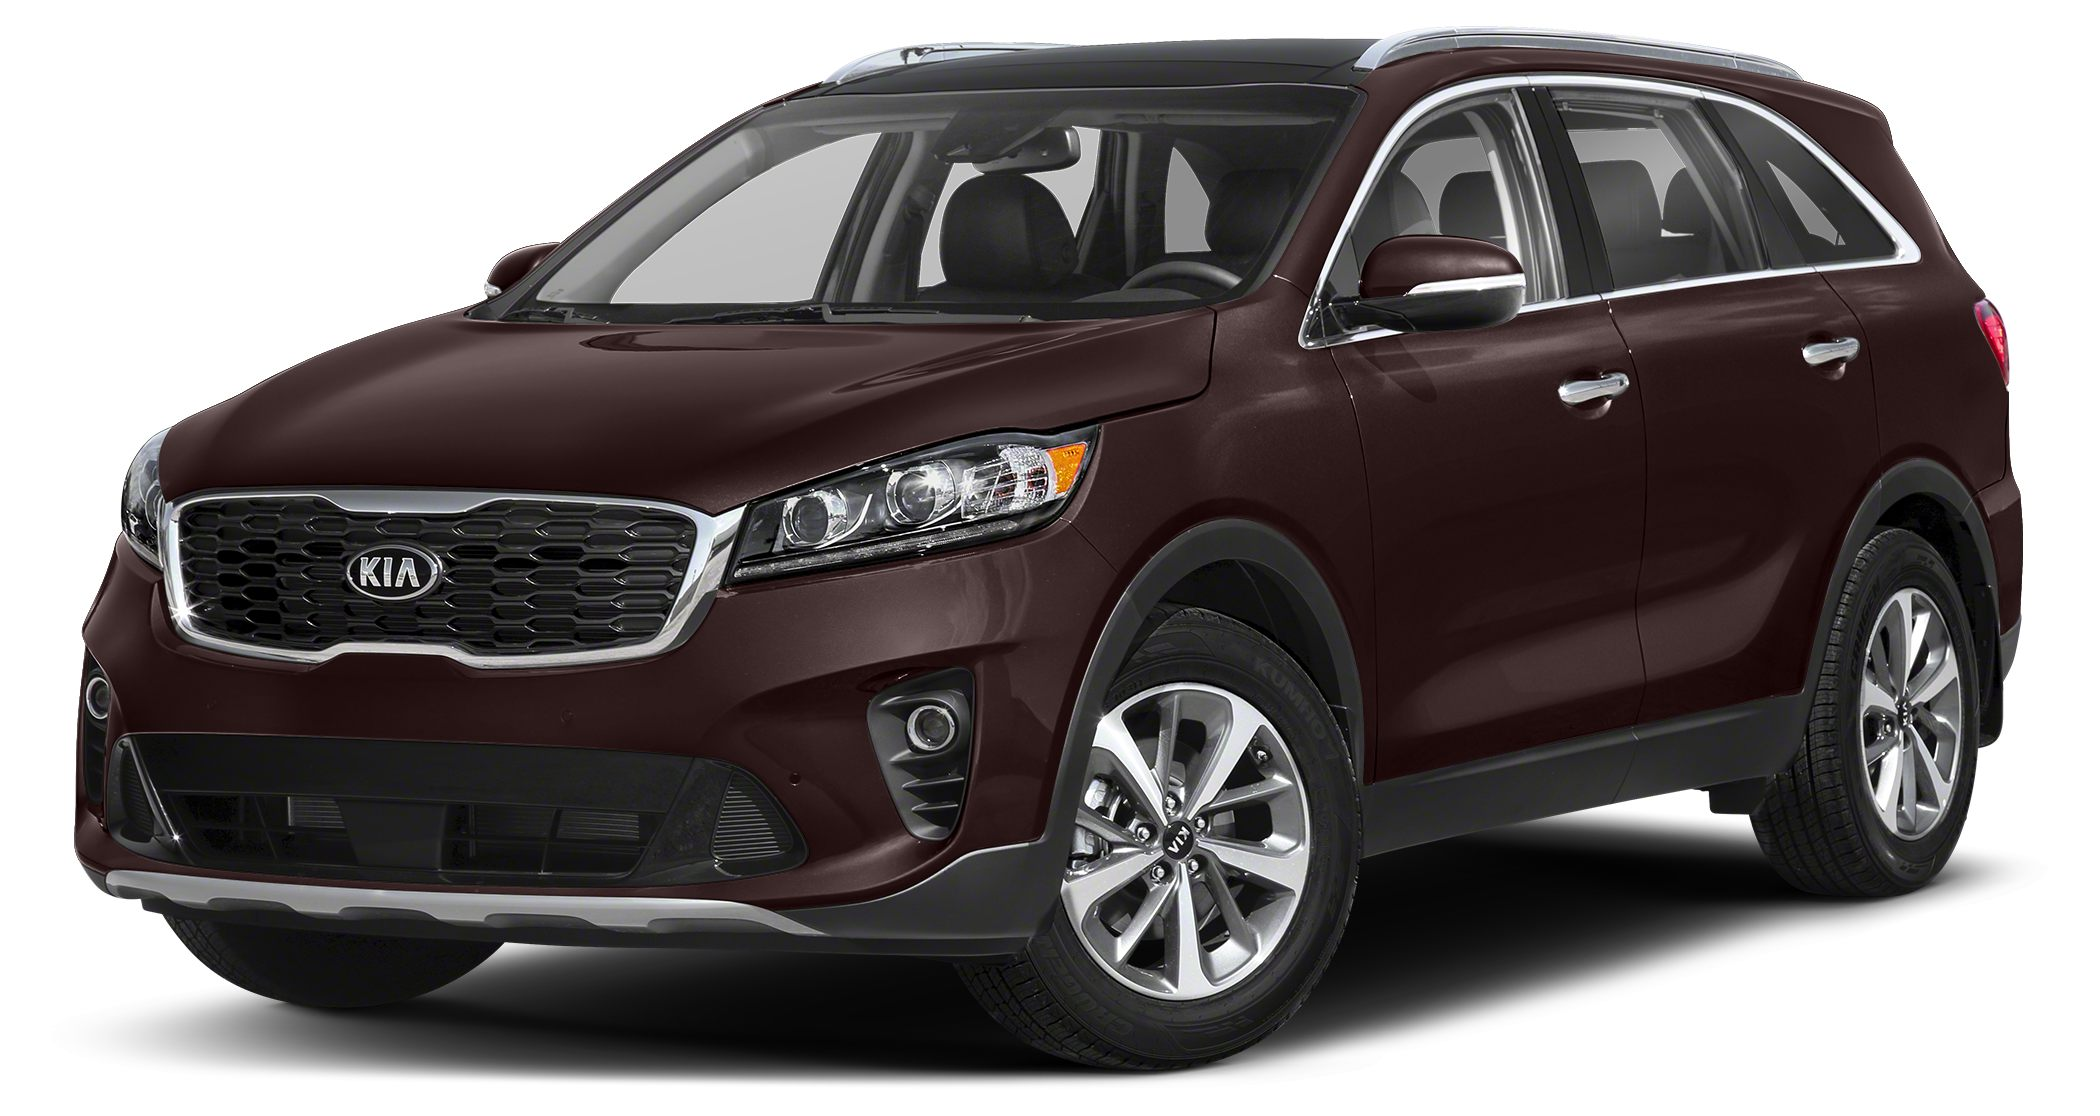 2019 Kia Sorento 24 LX Gassss saverrrr 29 MPG Hwy This Sorento is for Kia lovers the world